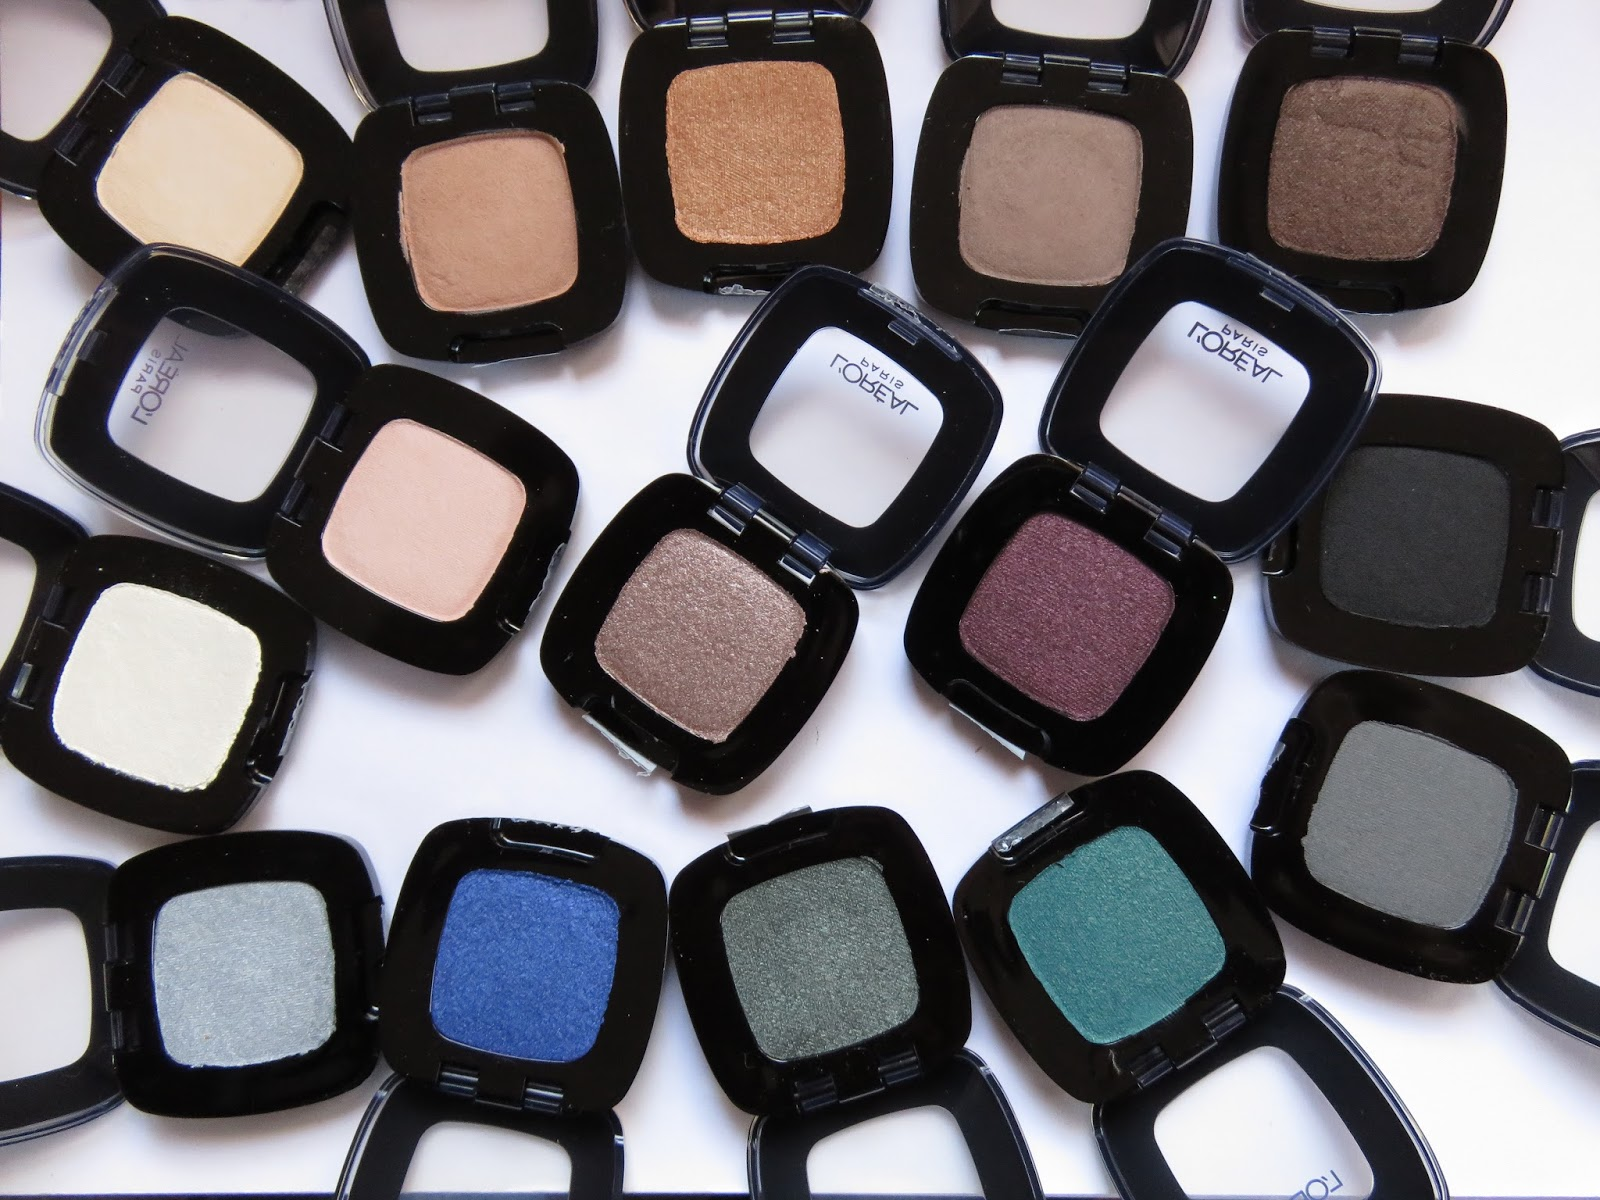 images The 7 Best Drugstore Eye Shadows to Buy in 2019